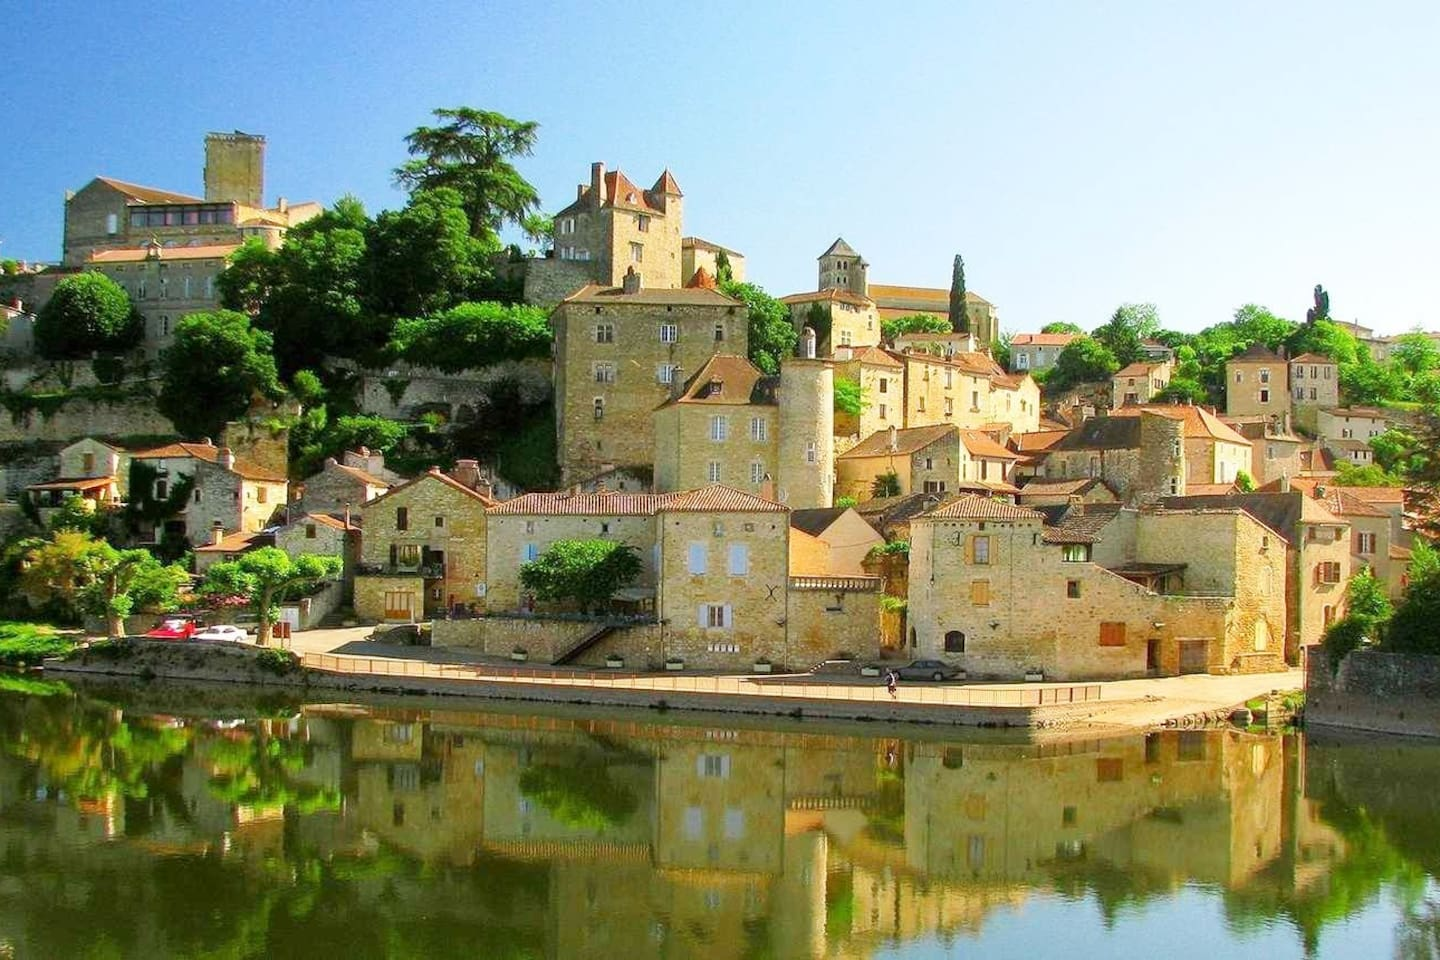 Wonderful view of Puy L'Eveque across the River Lot